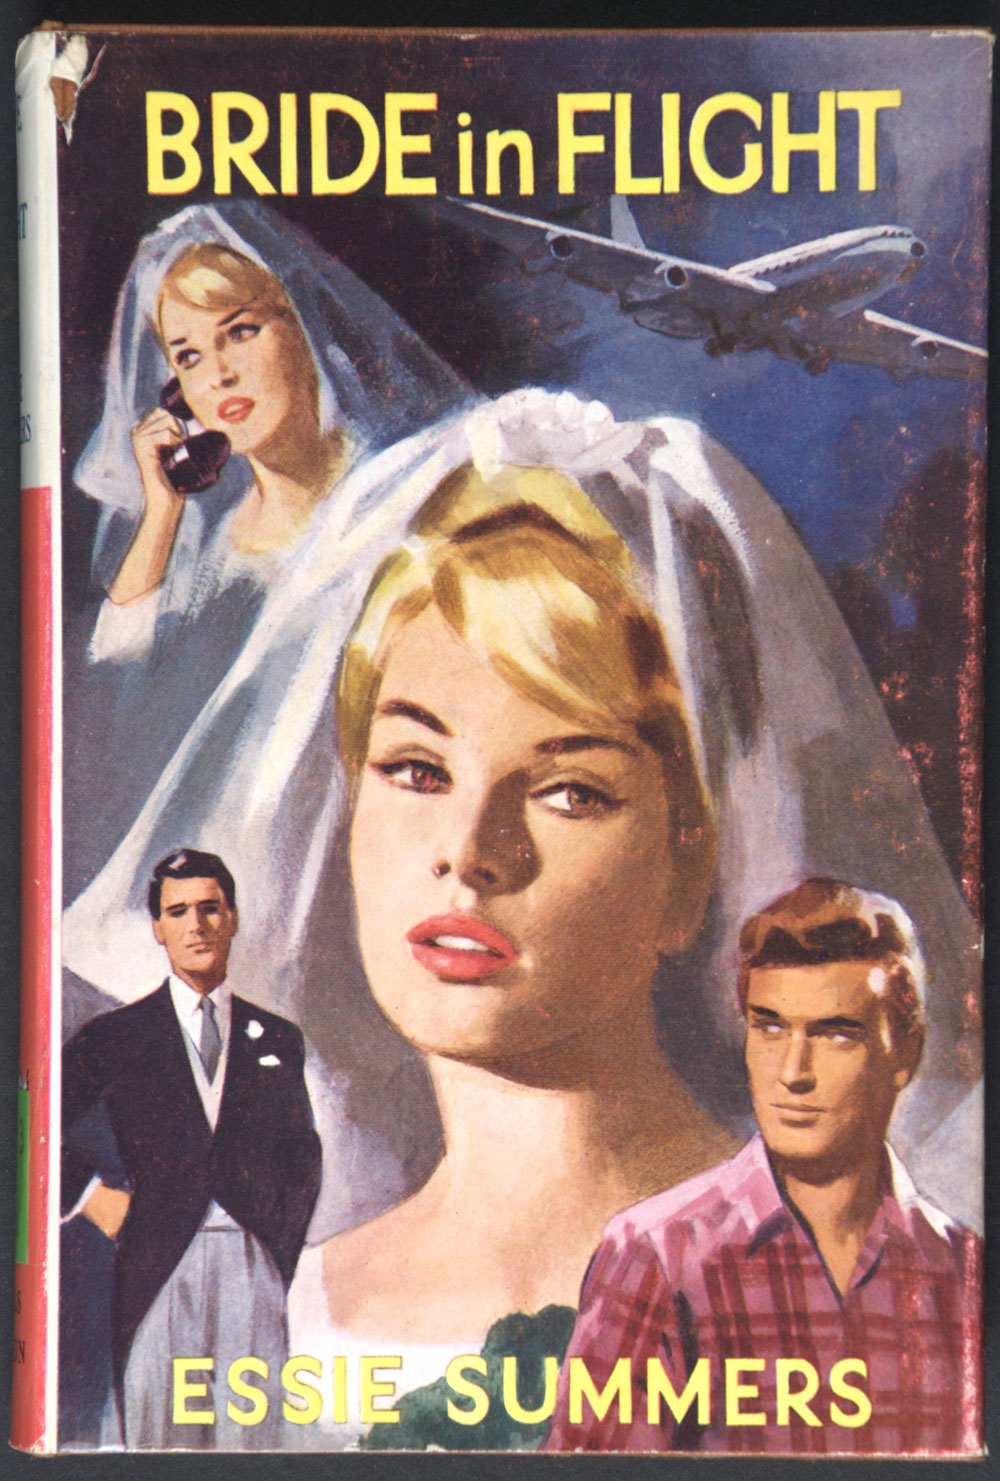 Essie Summers. <em>Bride in flight</em>. London: Mills & Boon, 1964.